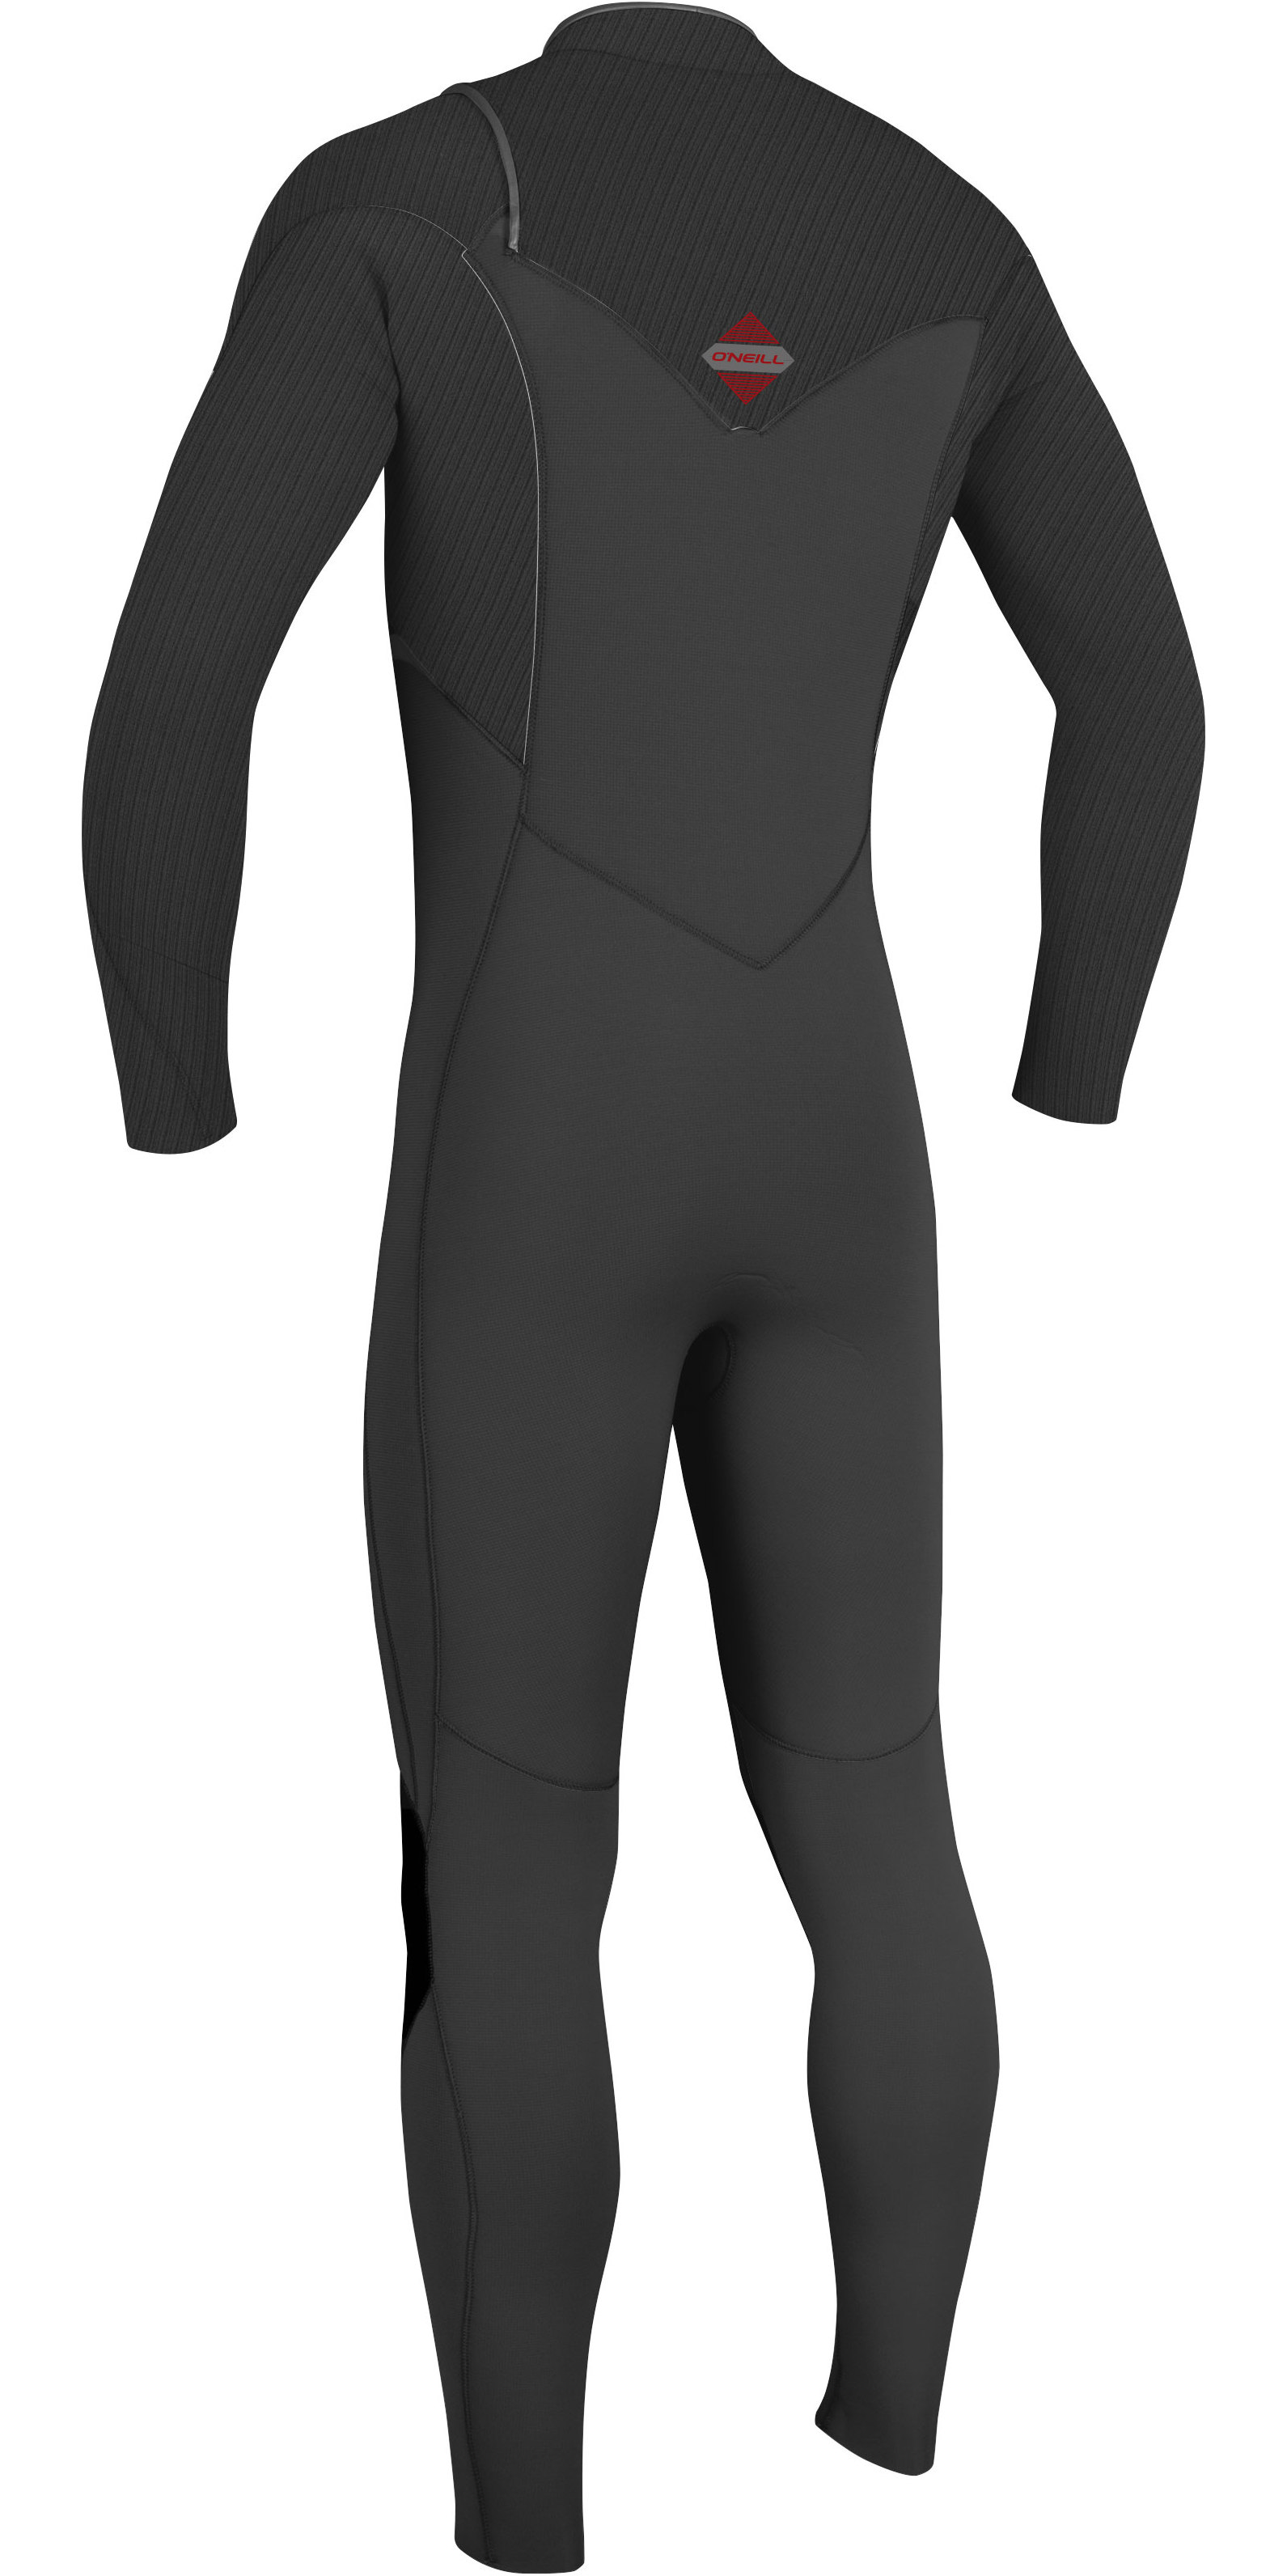 2019 O'Neill Mens Hyperfreak 4 / 3mm Borst Zip GBS Wetsuit Graphite 5001